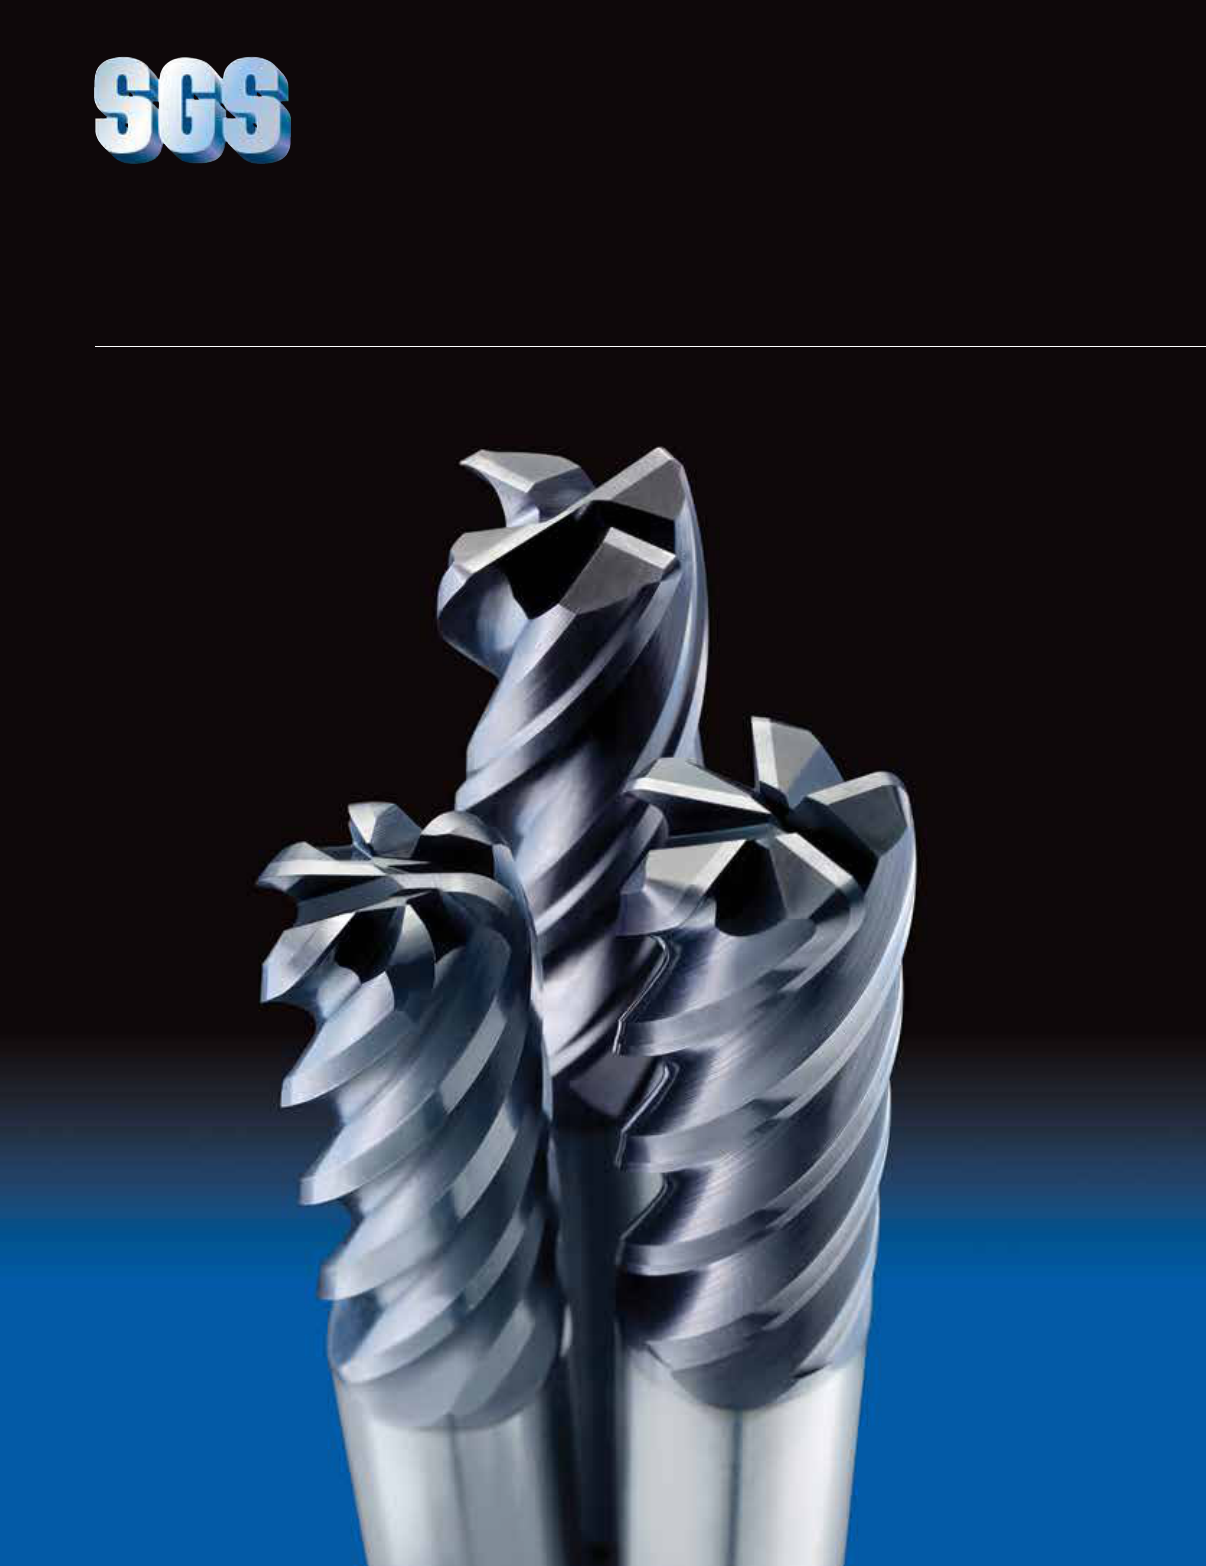 9//16 Shank Diameter 6 Length 0.030 Corner Radius 9//16 Cutting Diameter 1-1//8 Cutting Length 9//16 Shank Diameter Titanium Nitride-X Coating with Flat 1-1//8 Cutting Length SGS 36466 Z1PLC Z-Carb-AP High Performance End Mill 9//16 Cutting Diameter